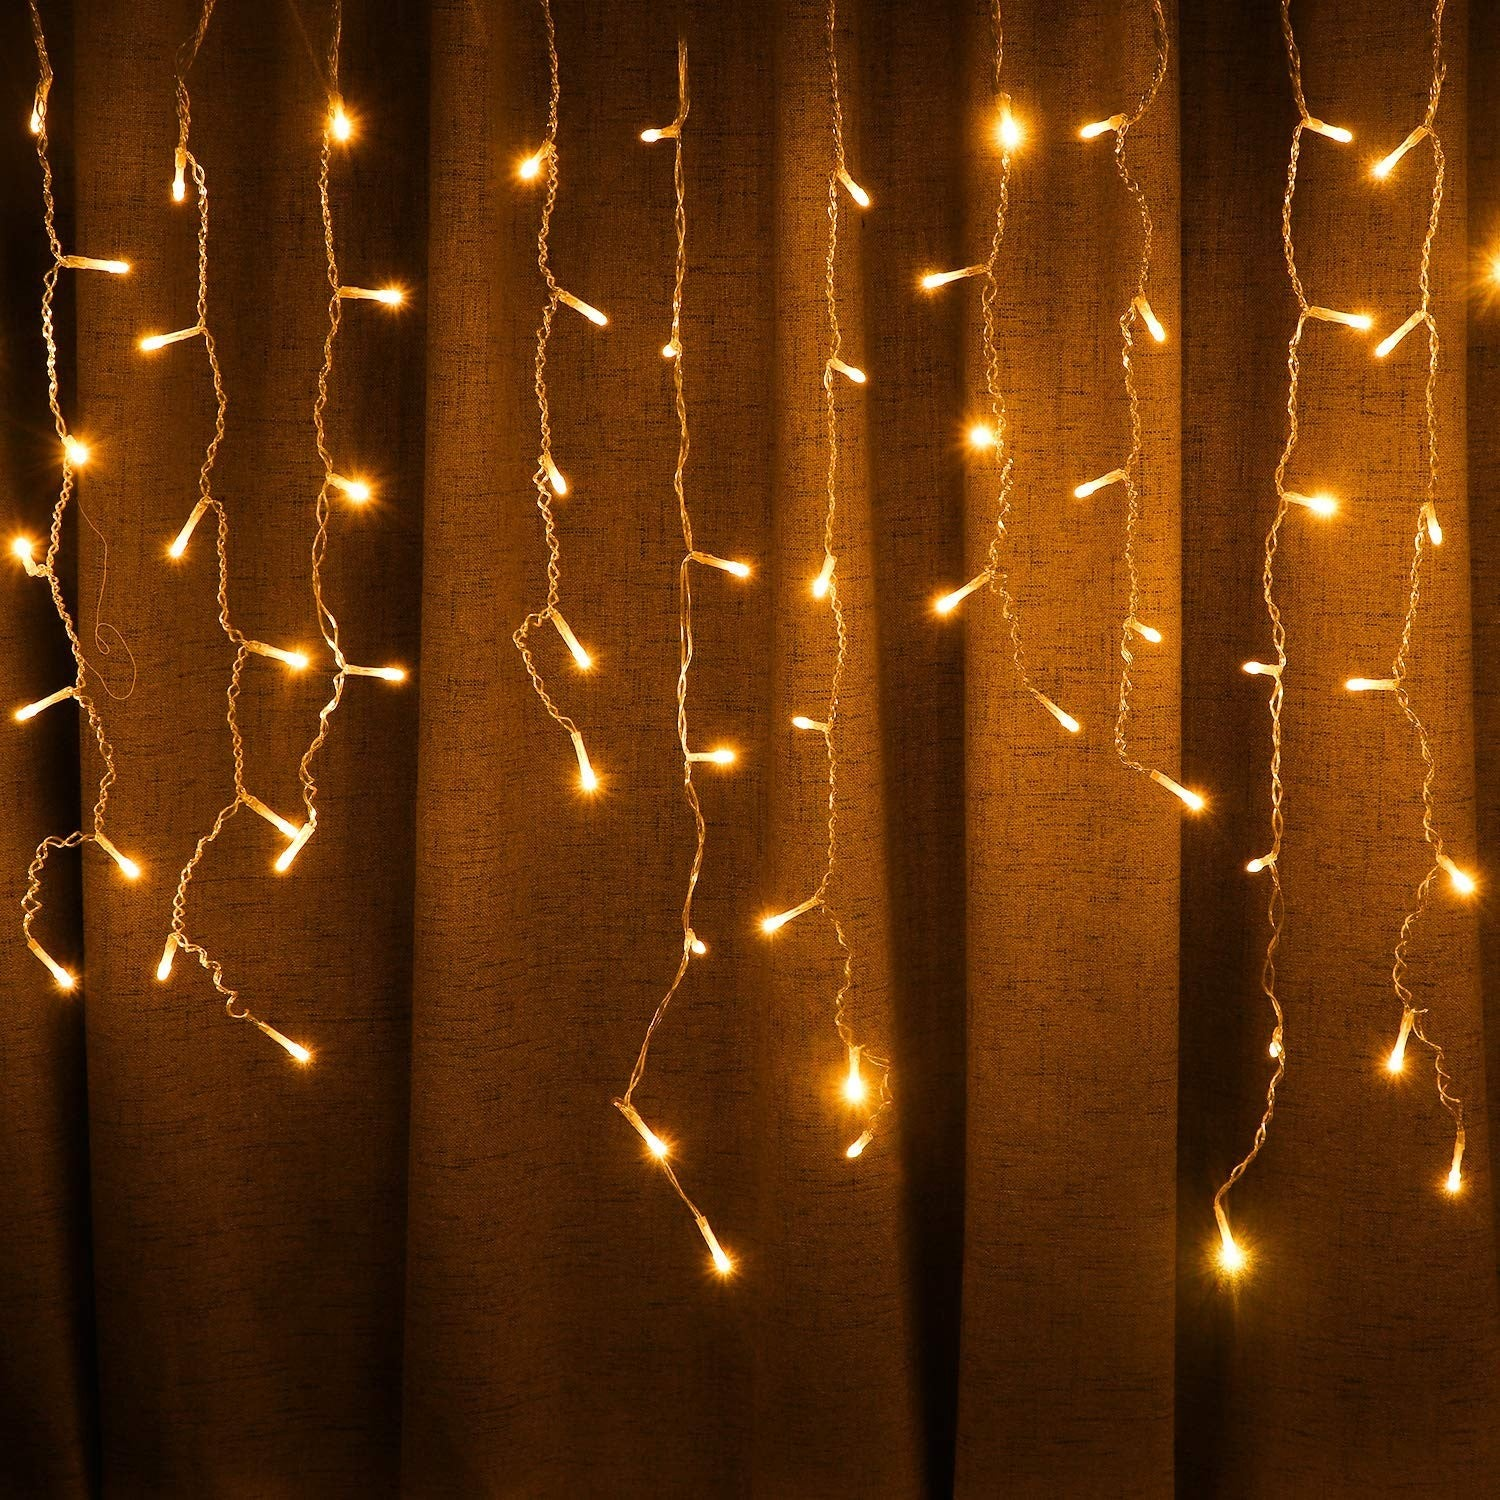 Solar-powered icicle lights hanging in front of a curtain